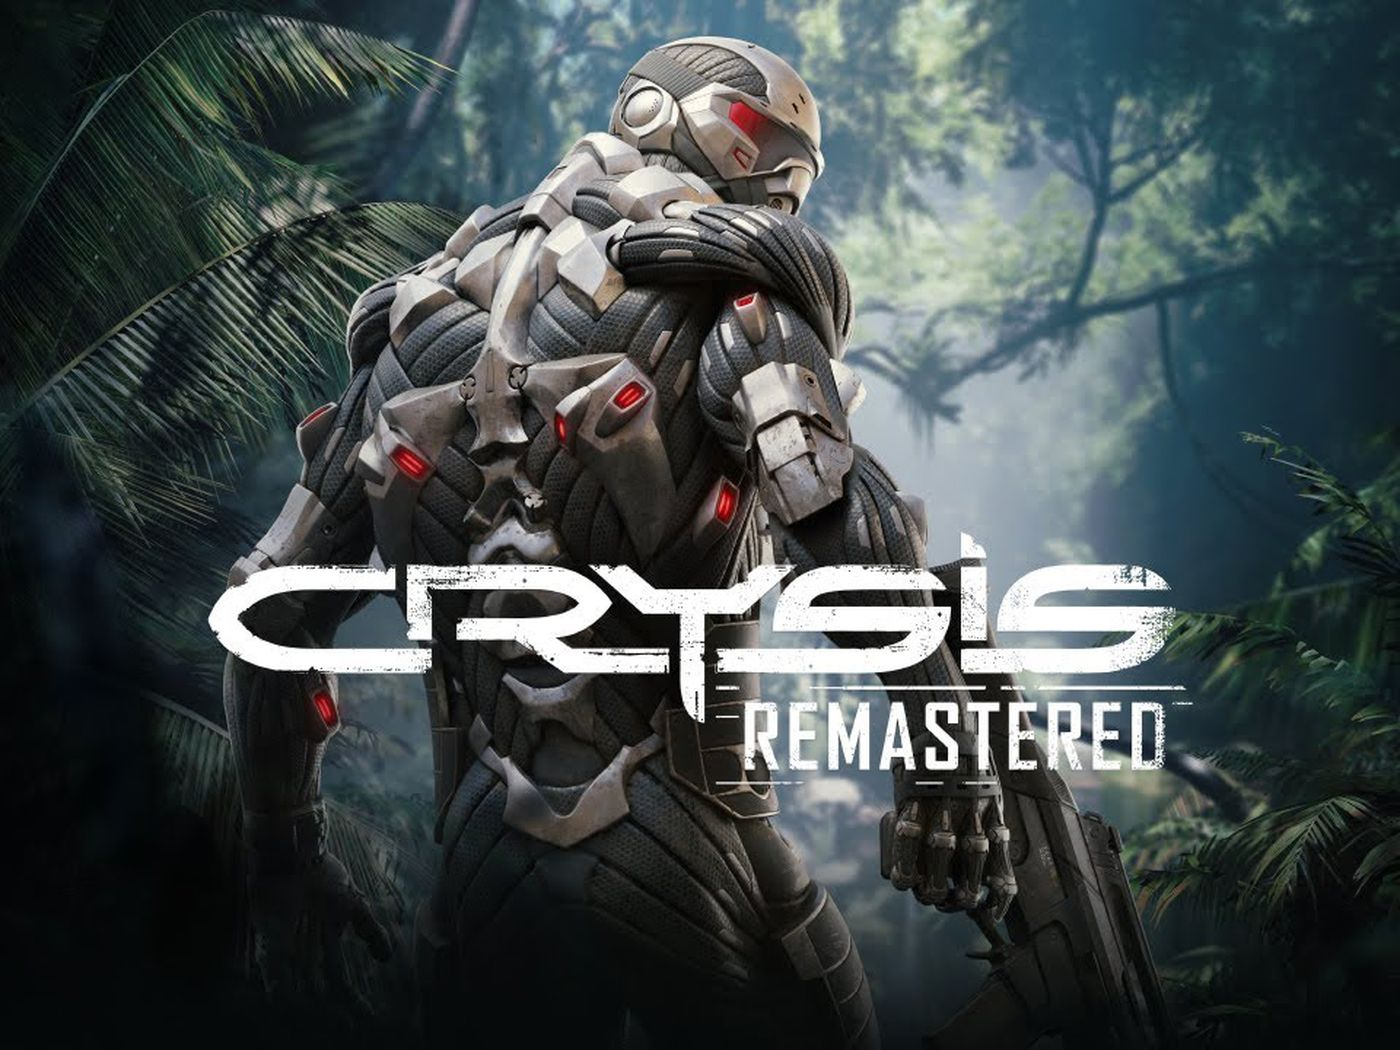 Fans are upset with Crysis Remastered's graphics, so Crytek is delaying the  game - The Verge